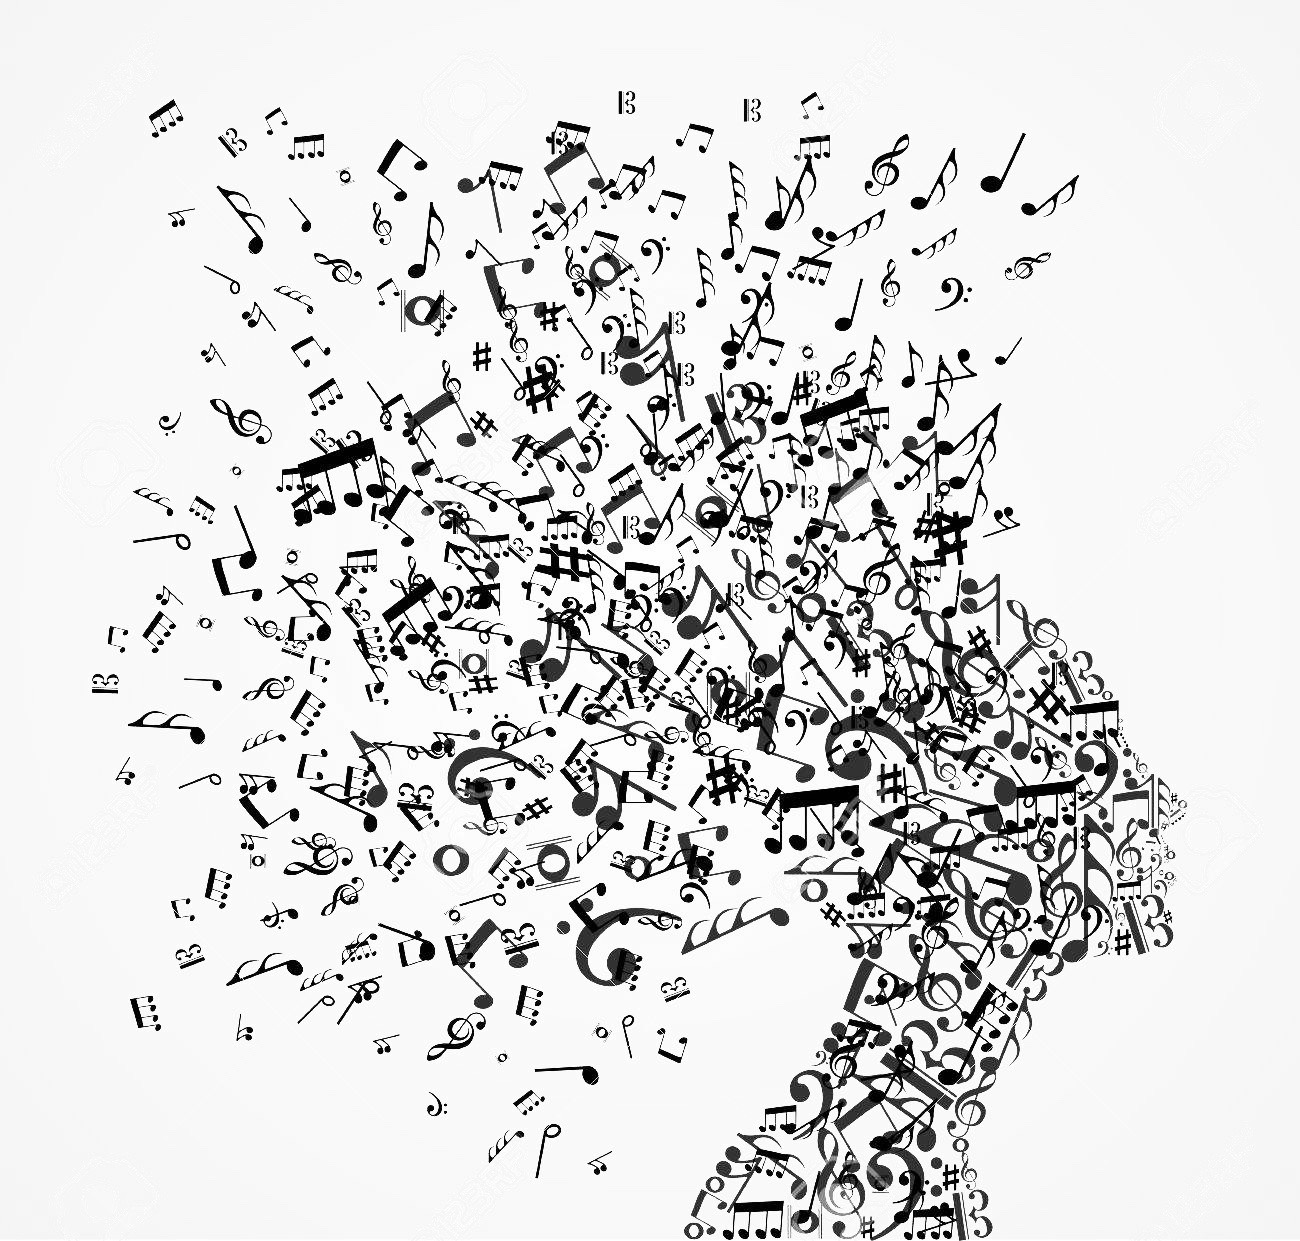 21280333-music-notes-splash-from-woman-s-head-illustration-.jpeg